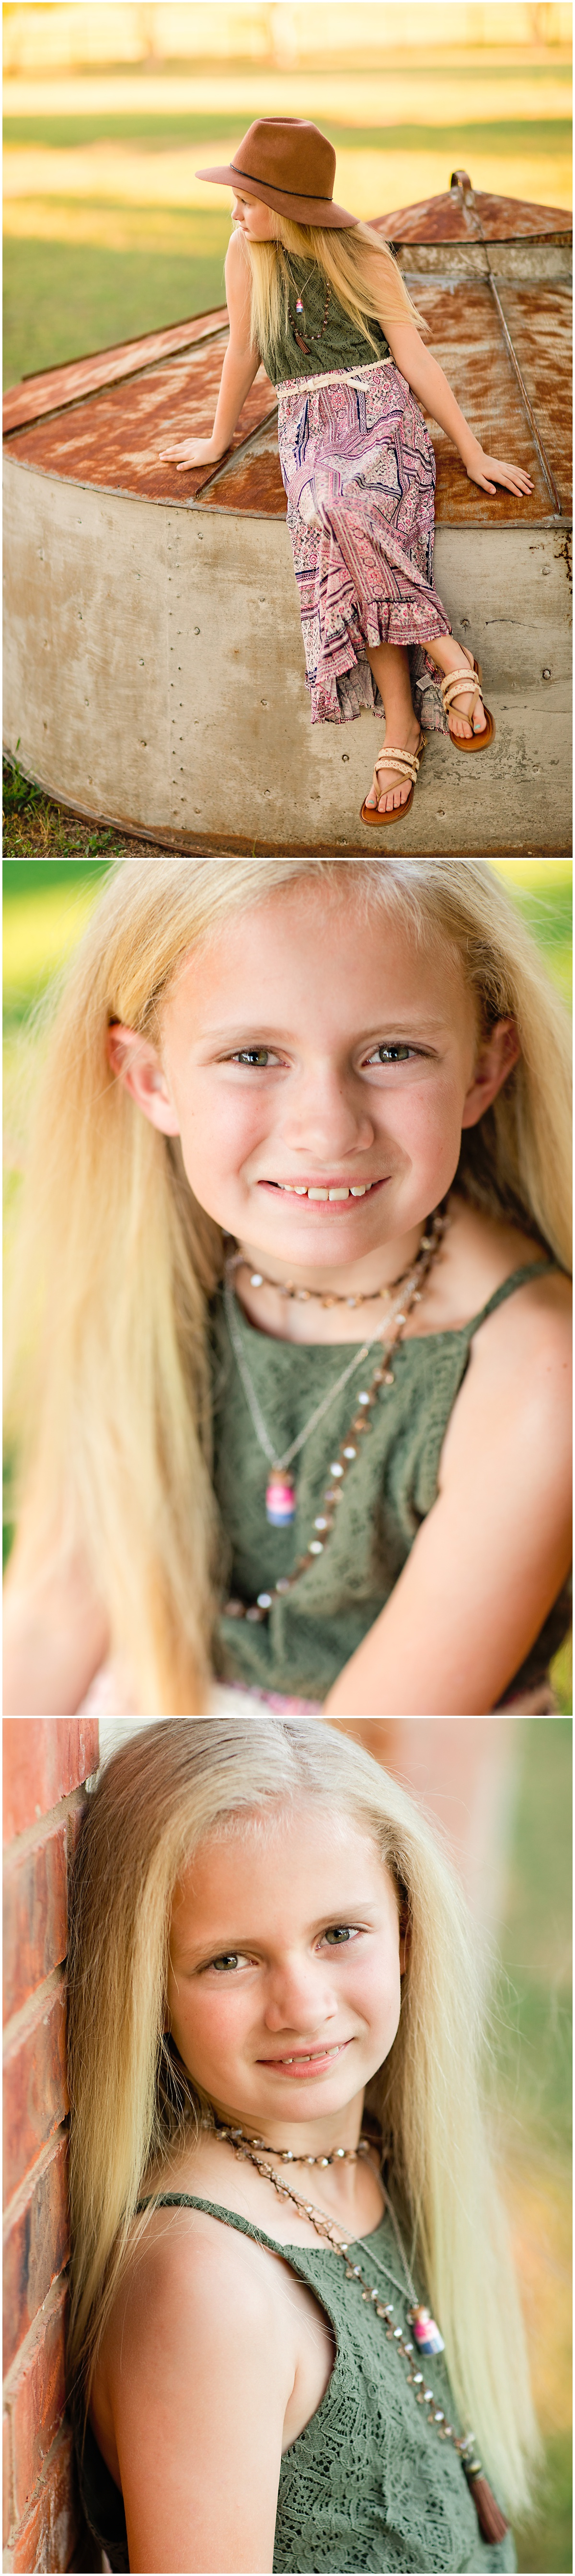 All-About-Me-Kid-Photos-San-Antonio-Hill-Country-Texas-Carly-Barton-Photography_0042.jpg